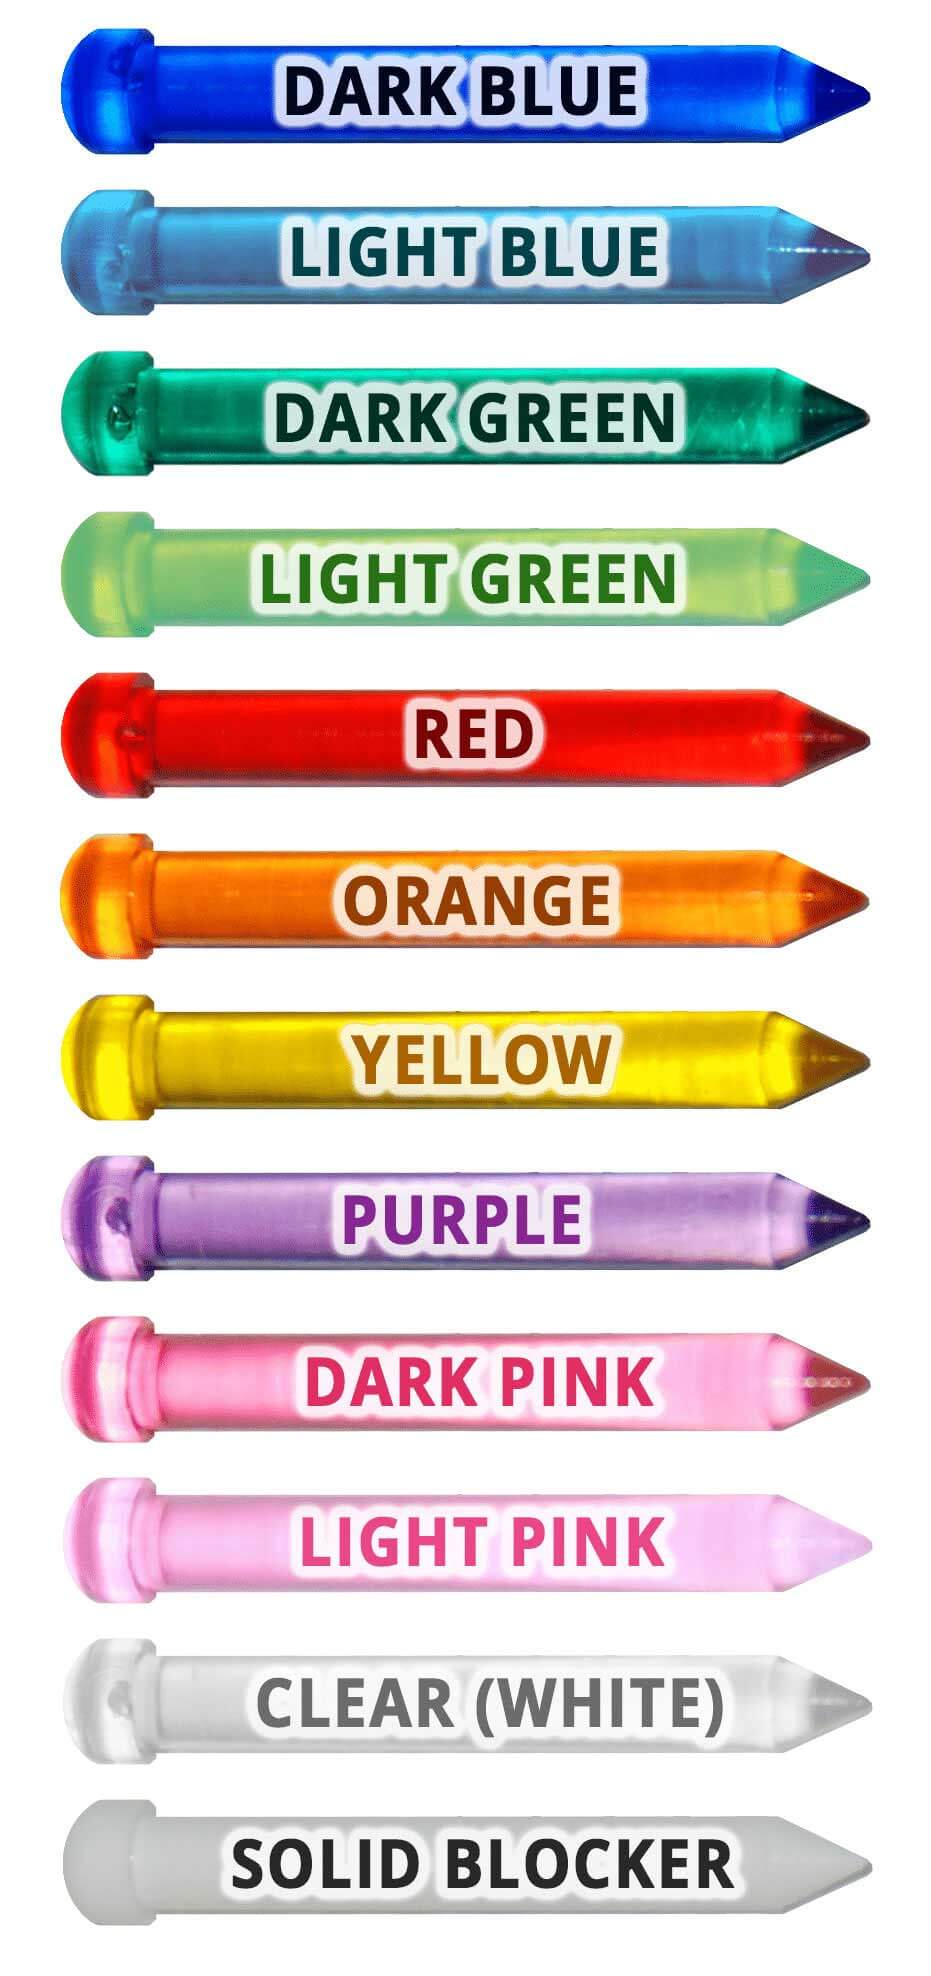 Color guide of the various colors of light pegs.